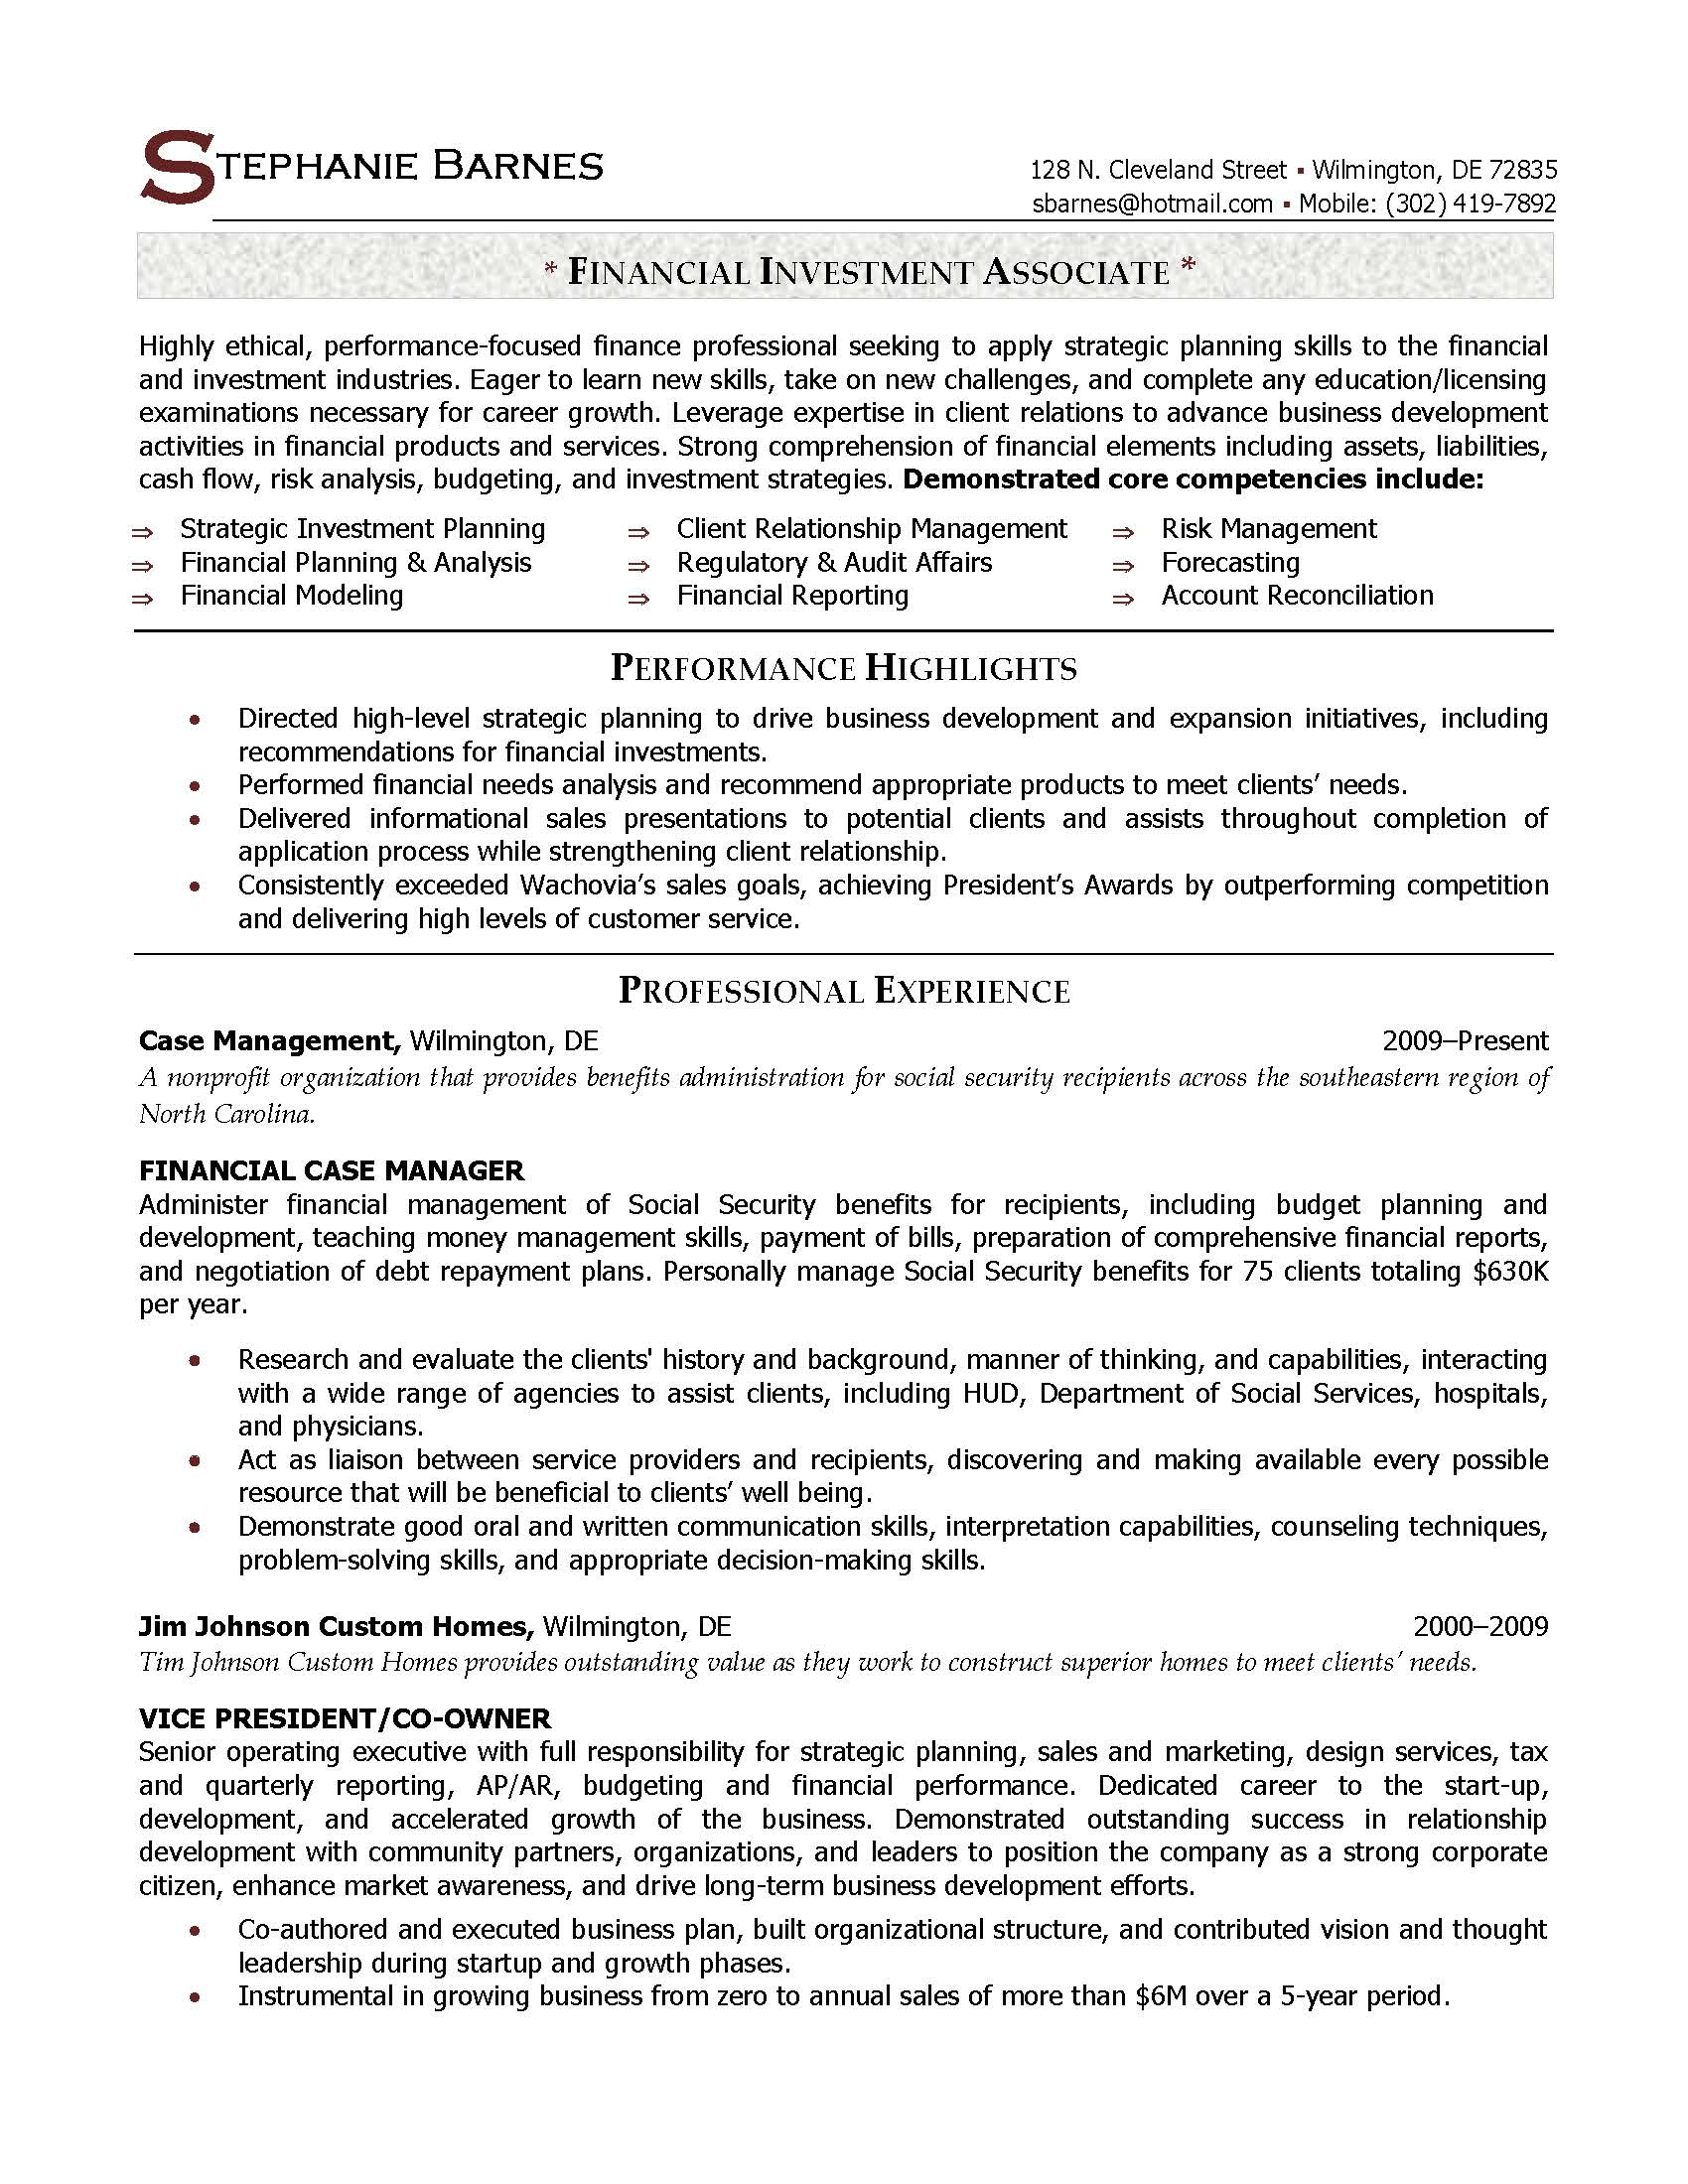 financial investment associate resume sample provided by elite resume writing services